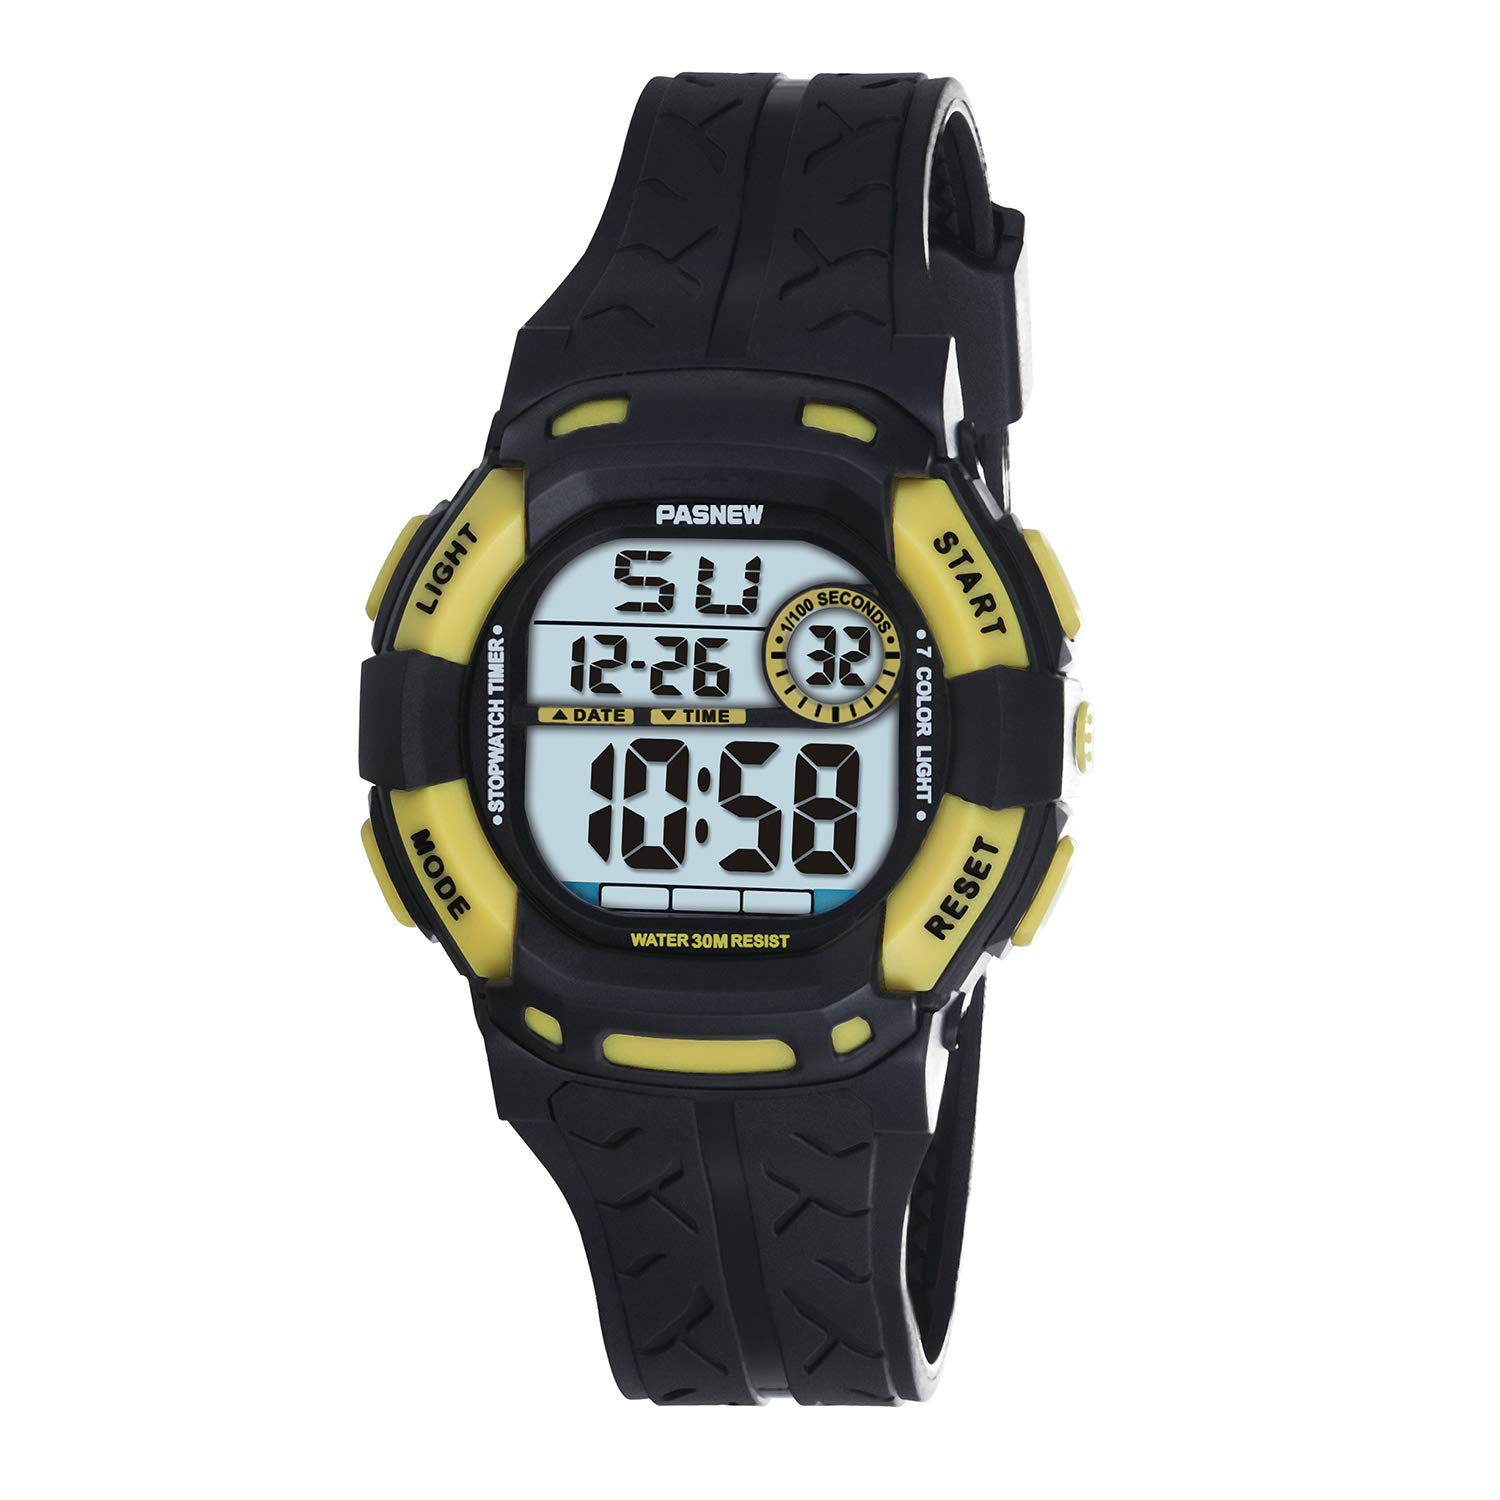 PASNEW Kids Watches Waterproof 100FT Digital Sports Wristwatch with 7-Color Flashing LED Light Alarm Stopwatch Chime Date Day Black Yellow